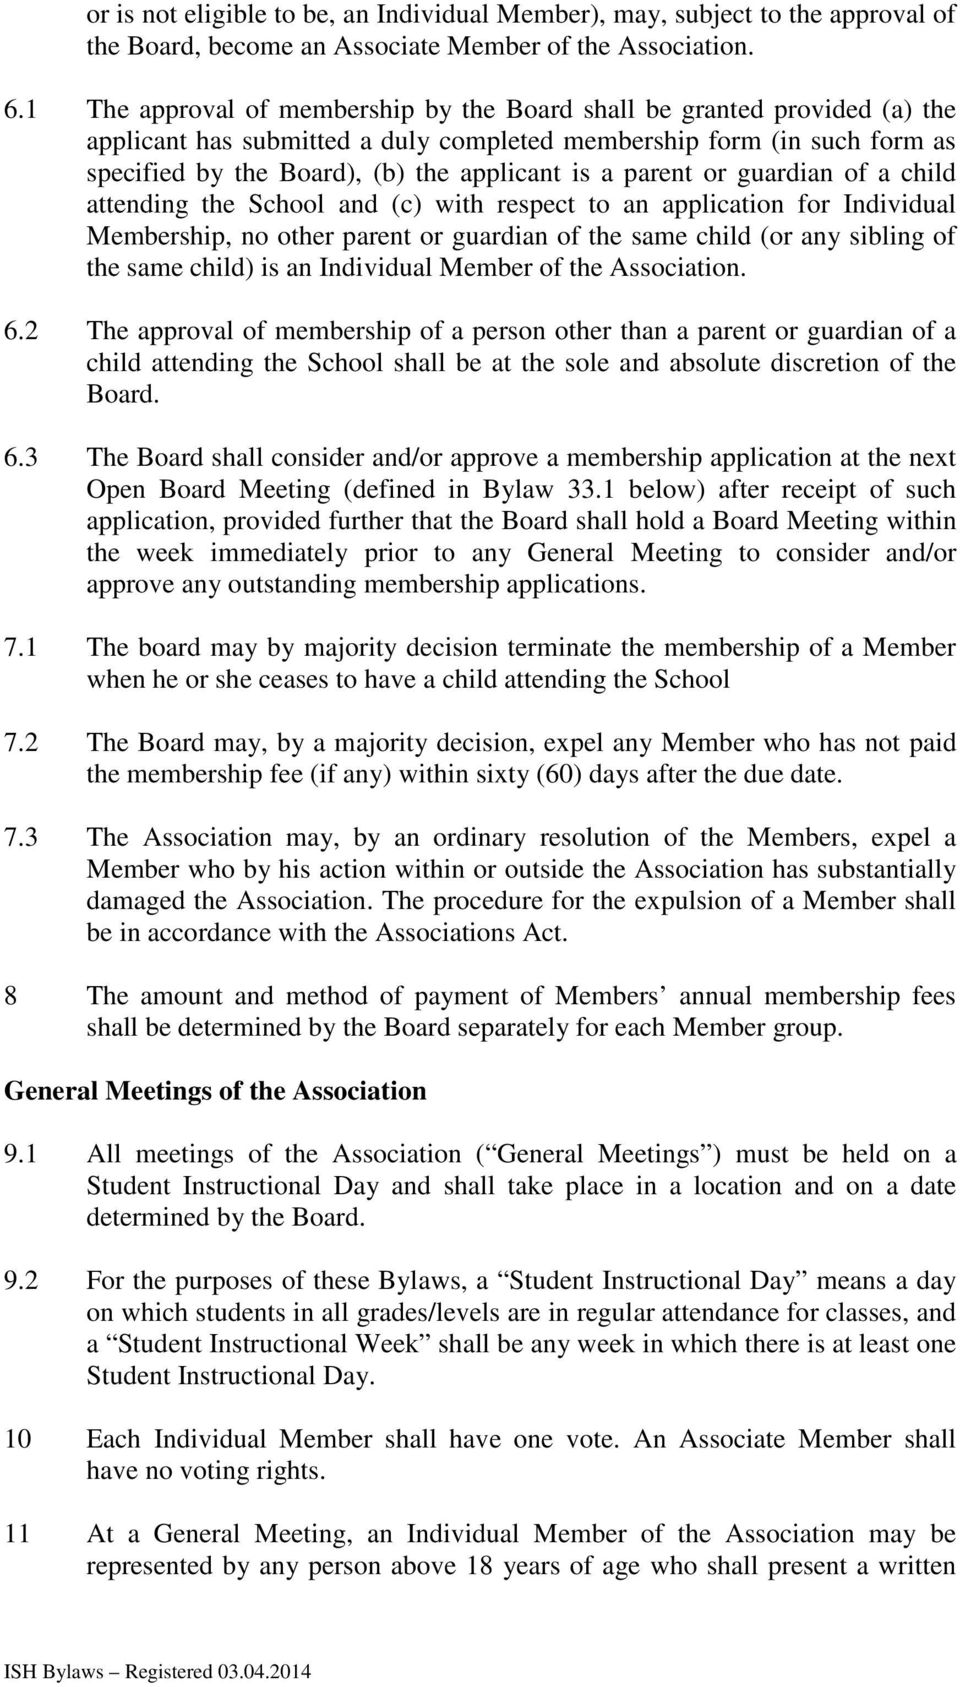 parent or guardian of a child attending the School and (c) with respect to an application for Individual Membership, no other parent or guardian of the same child (or any sibling of the same child)